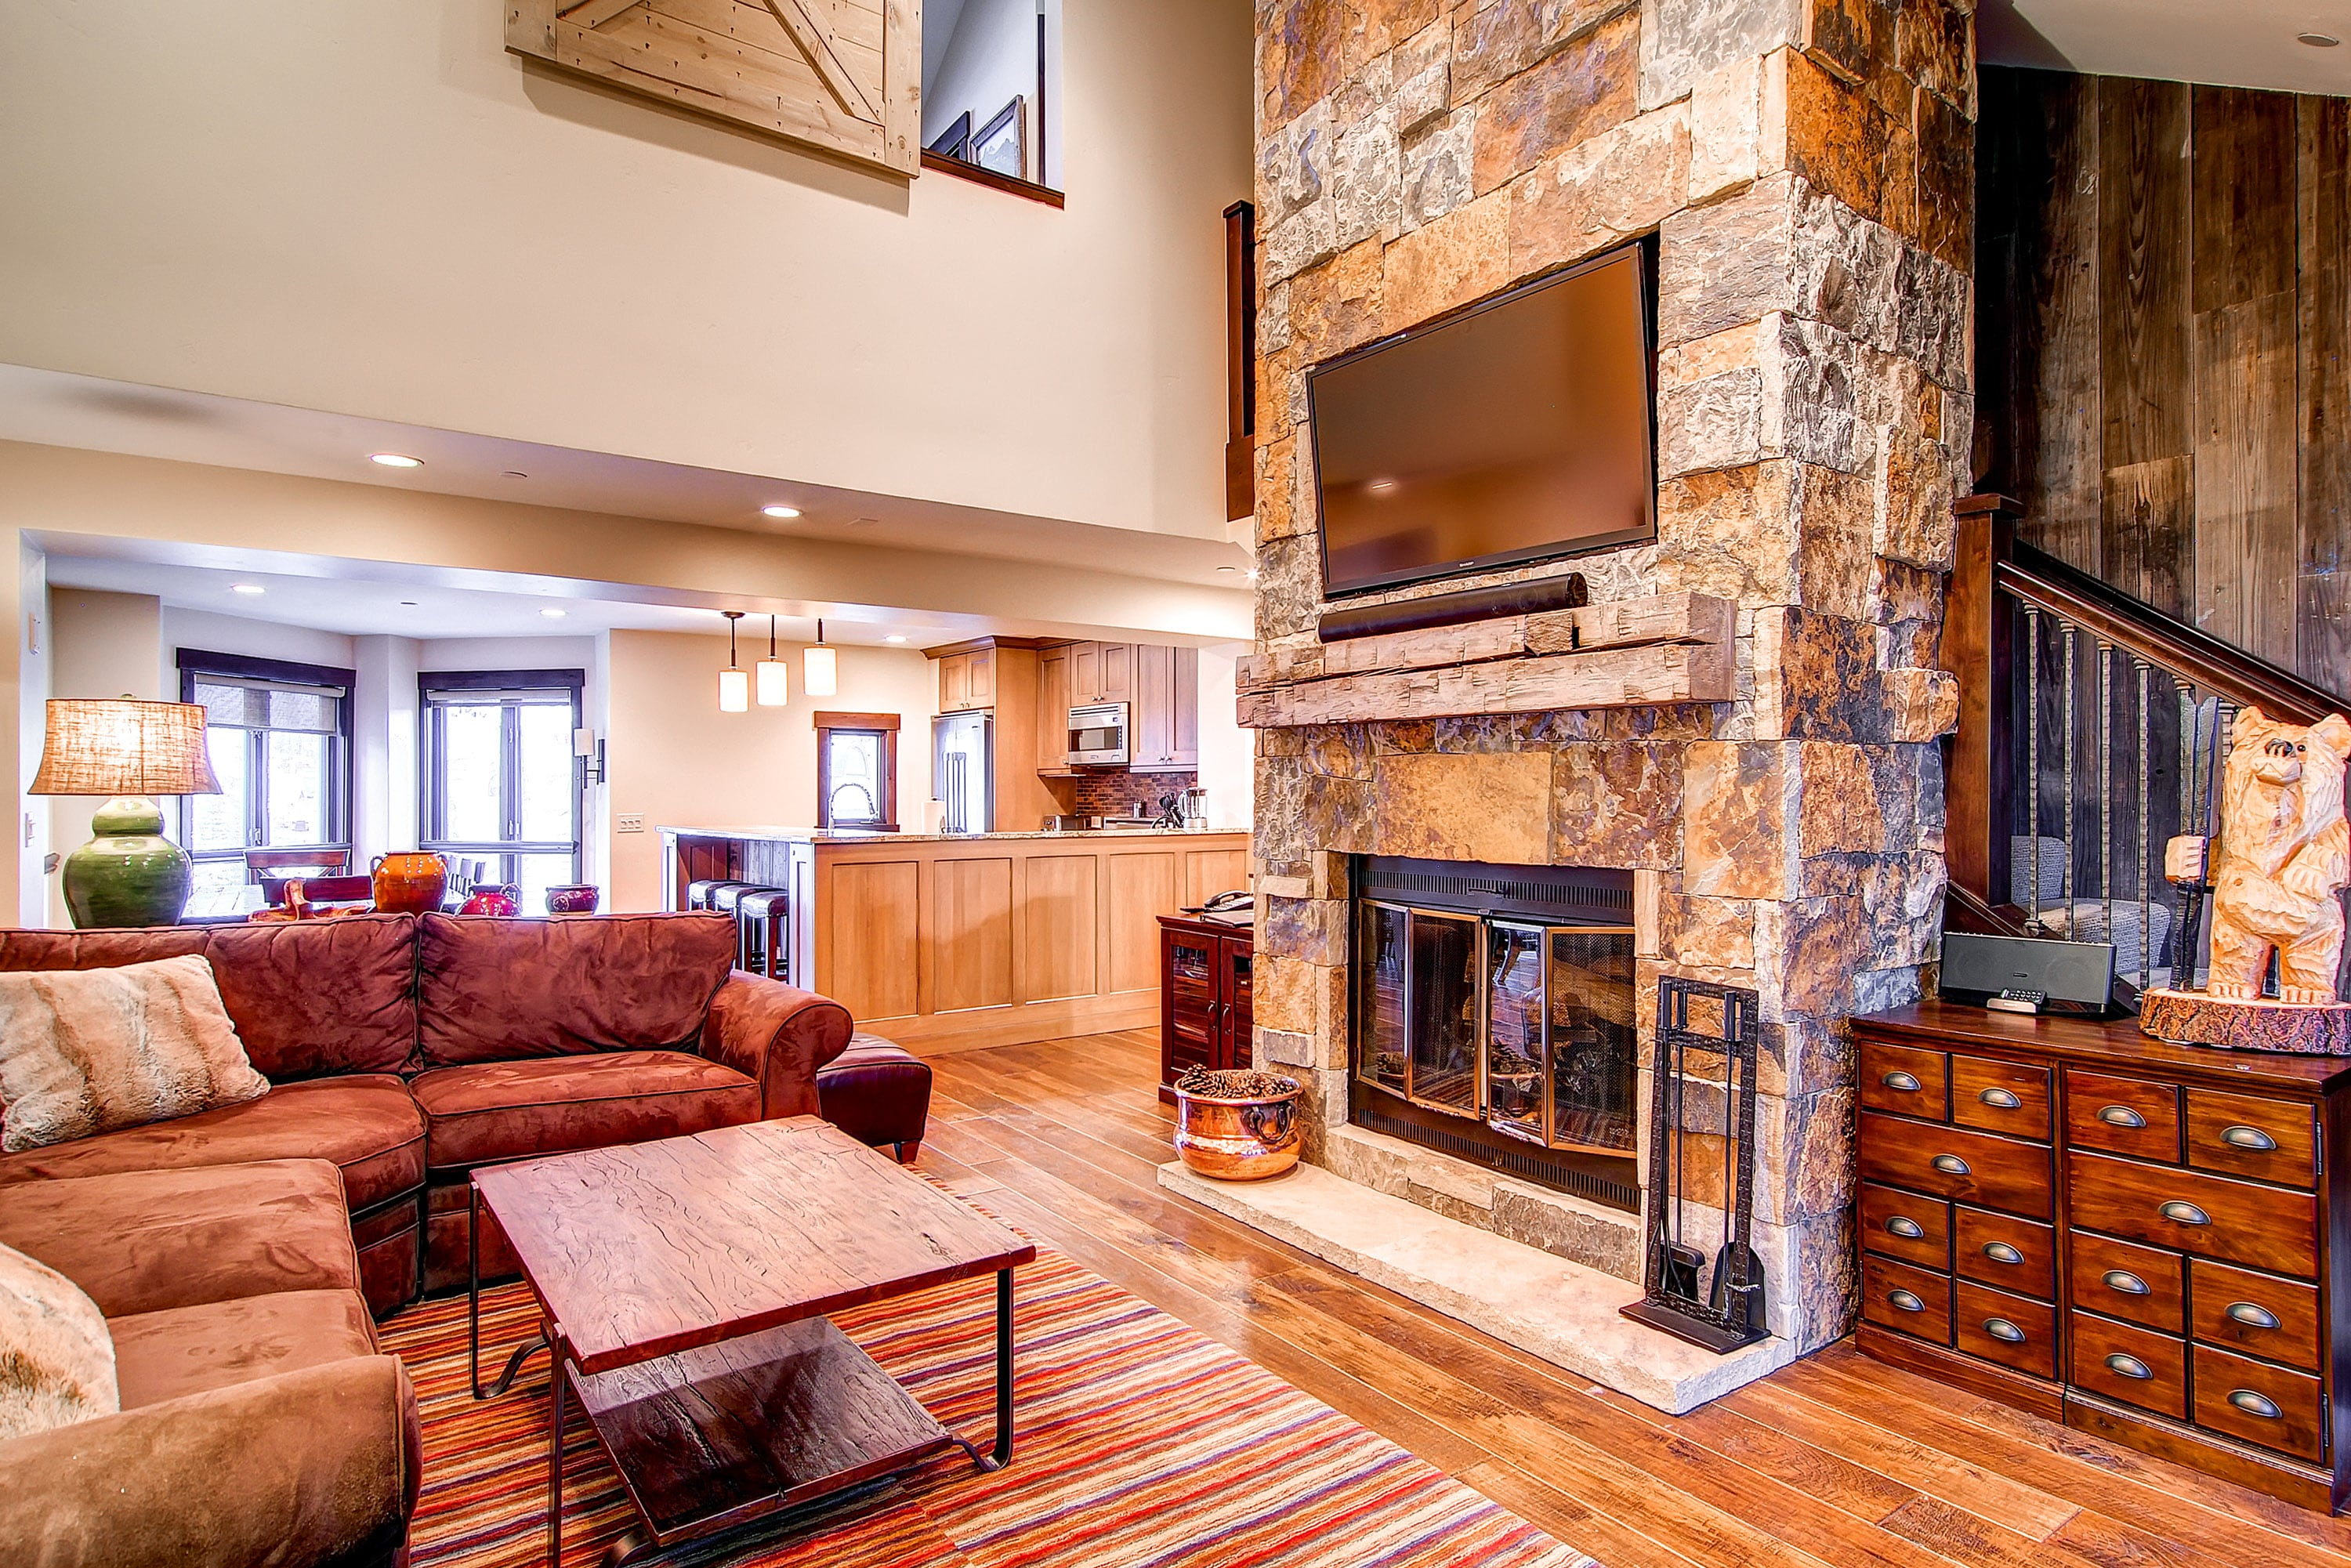 Property Image 2 - Luxury, Two-Bedroom Condo with Stone Fireplace; in the Village